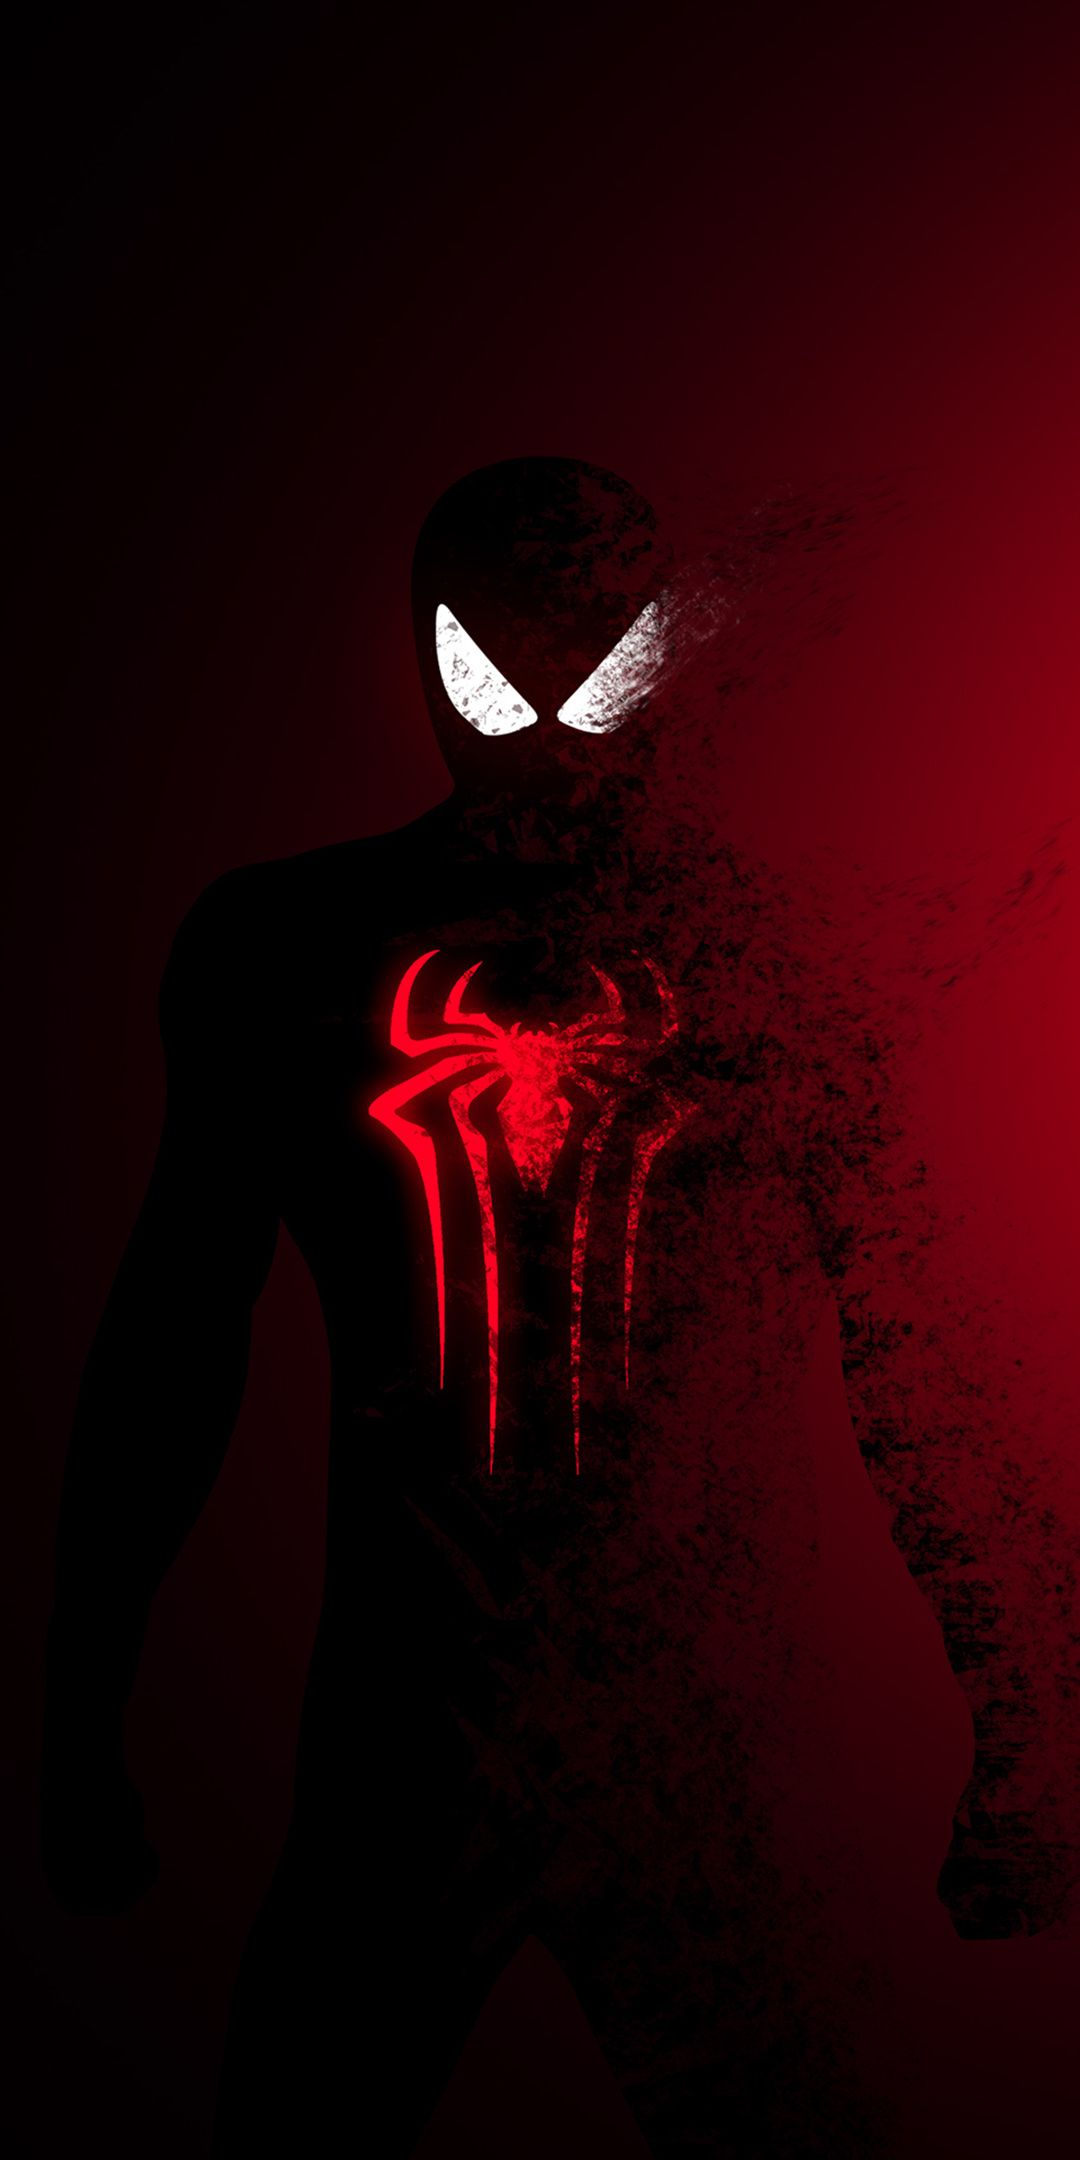 Pin By Charlton Read On Nerdy Marvel Spiderman Marvel Wallpaper